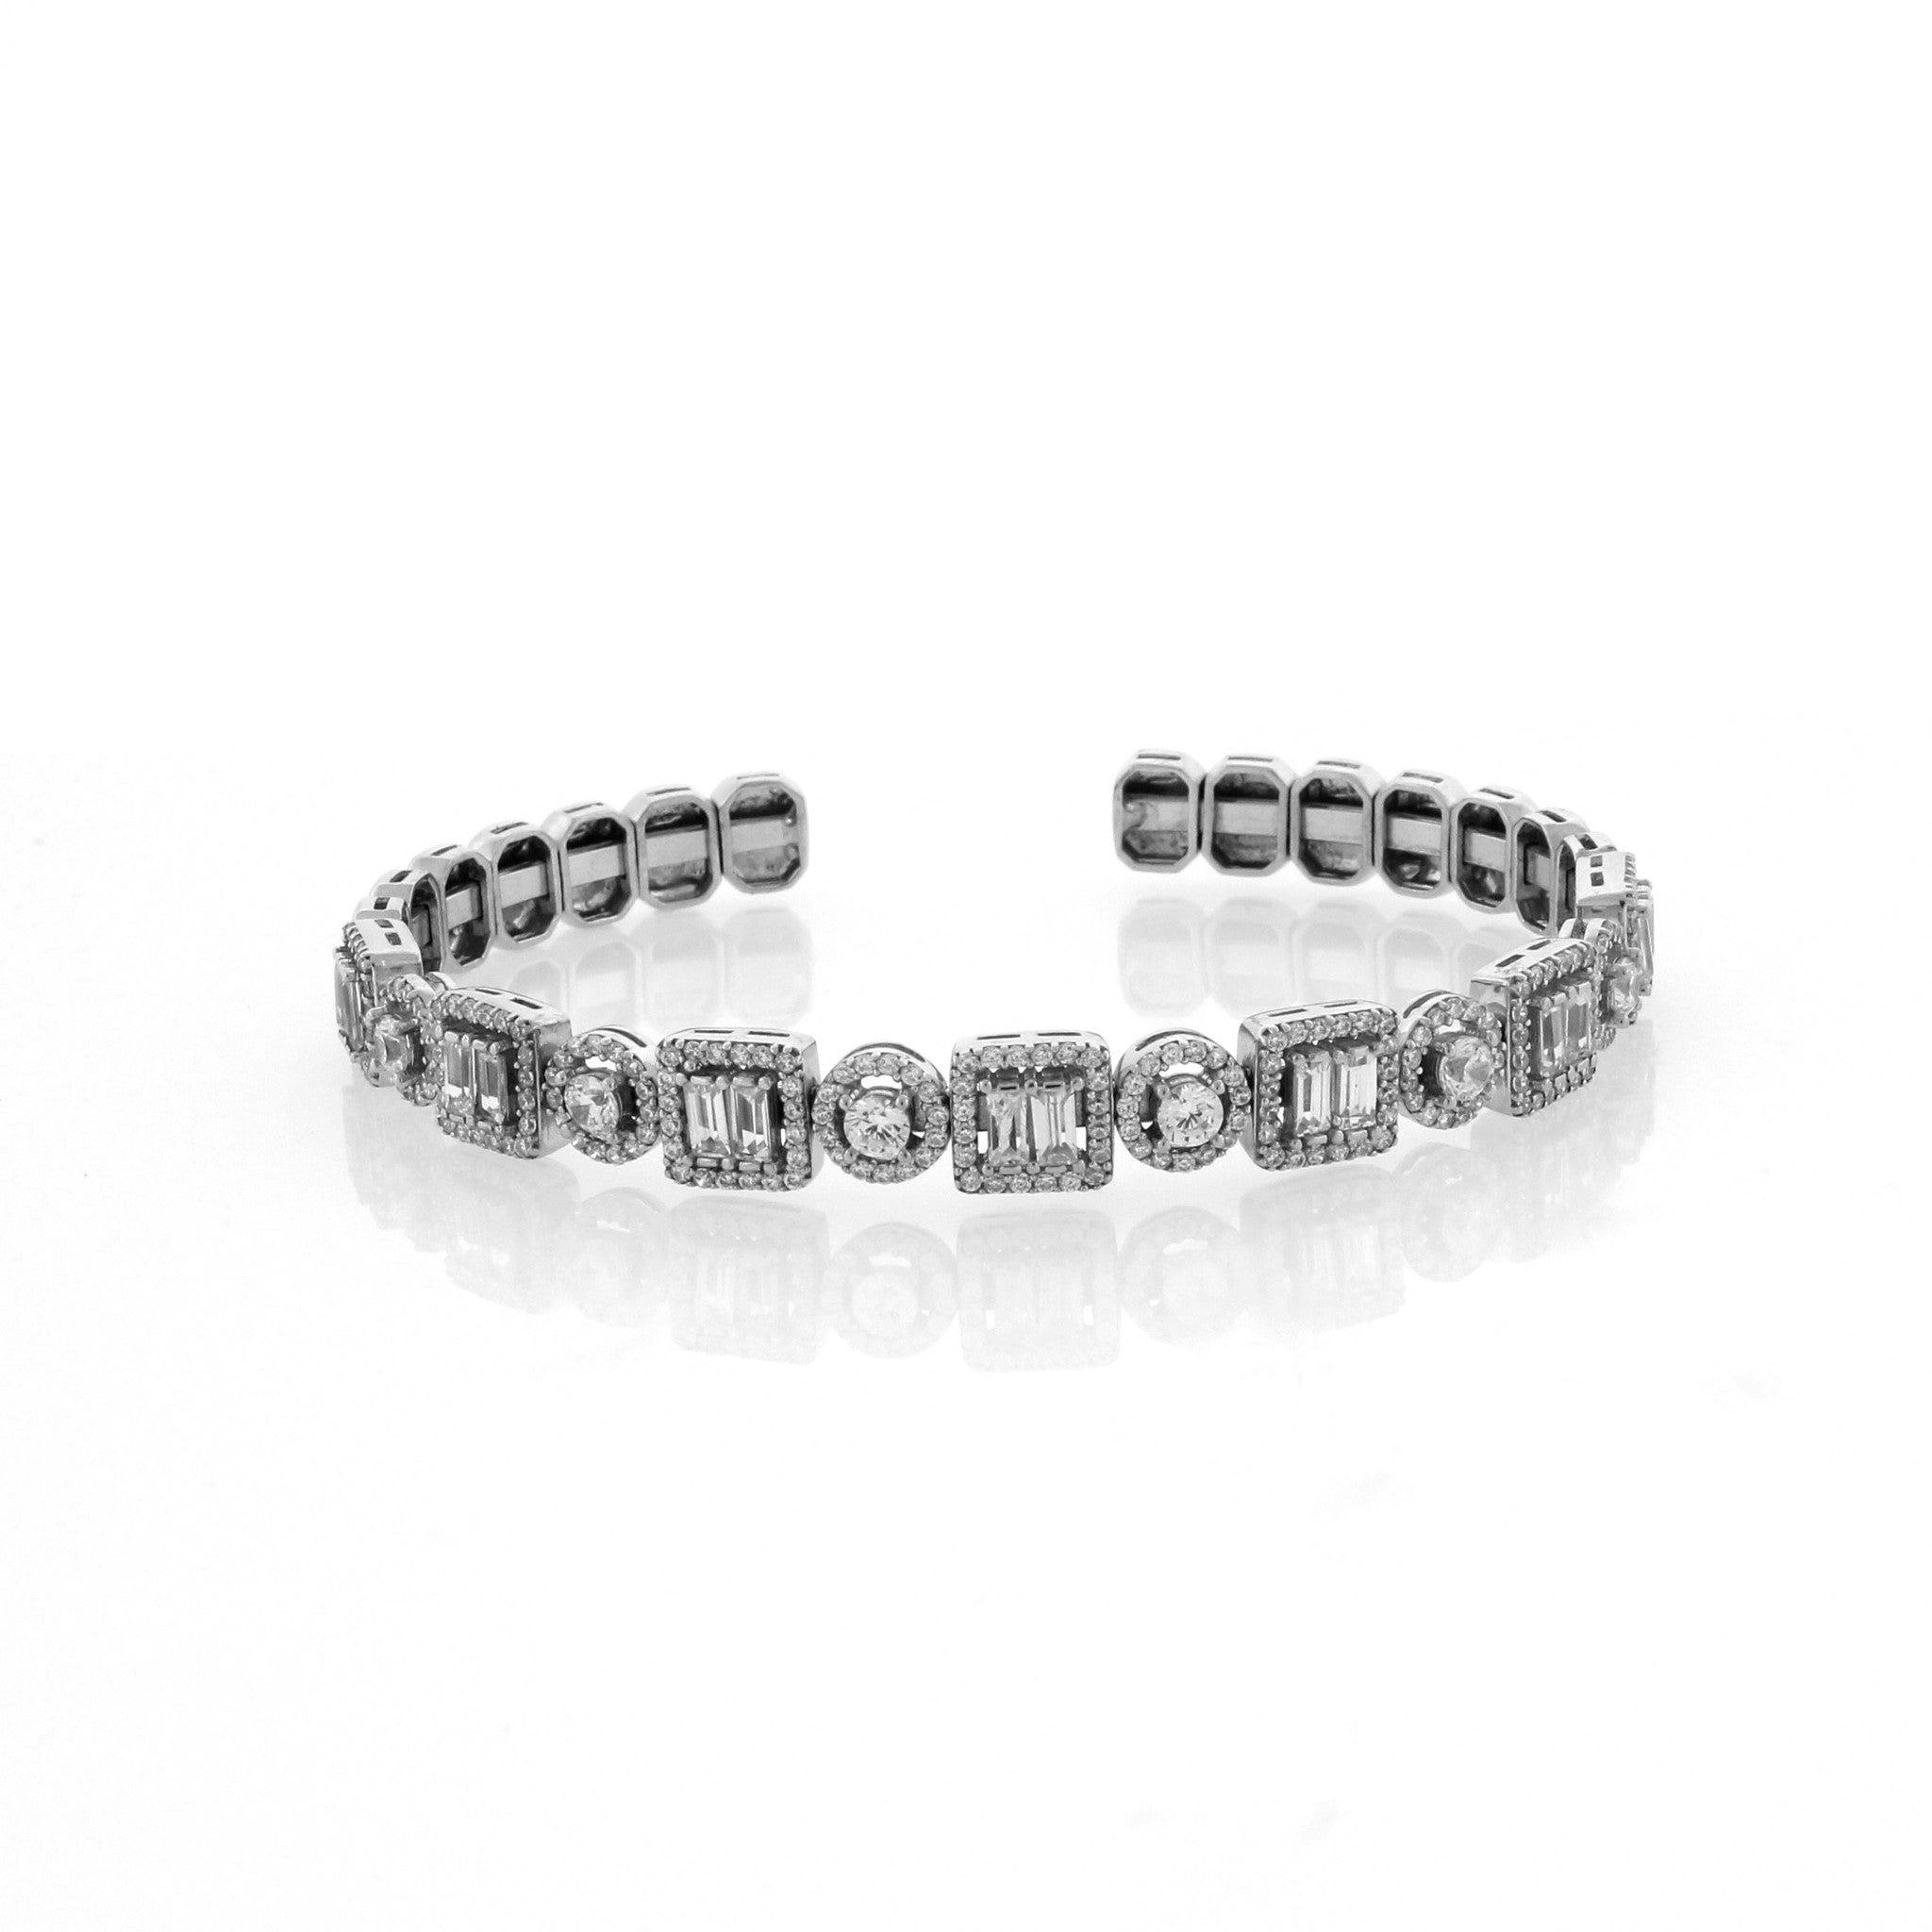 bracelet silver dazzle stone and en slim bangle crystal plated bracelets diameter amp cm small bangles match blue